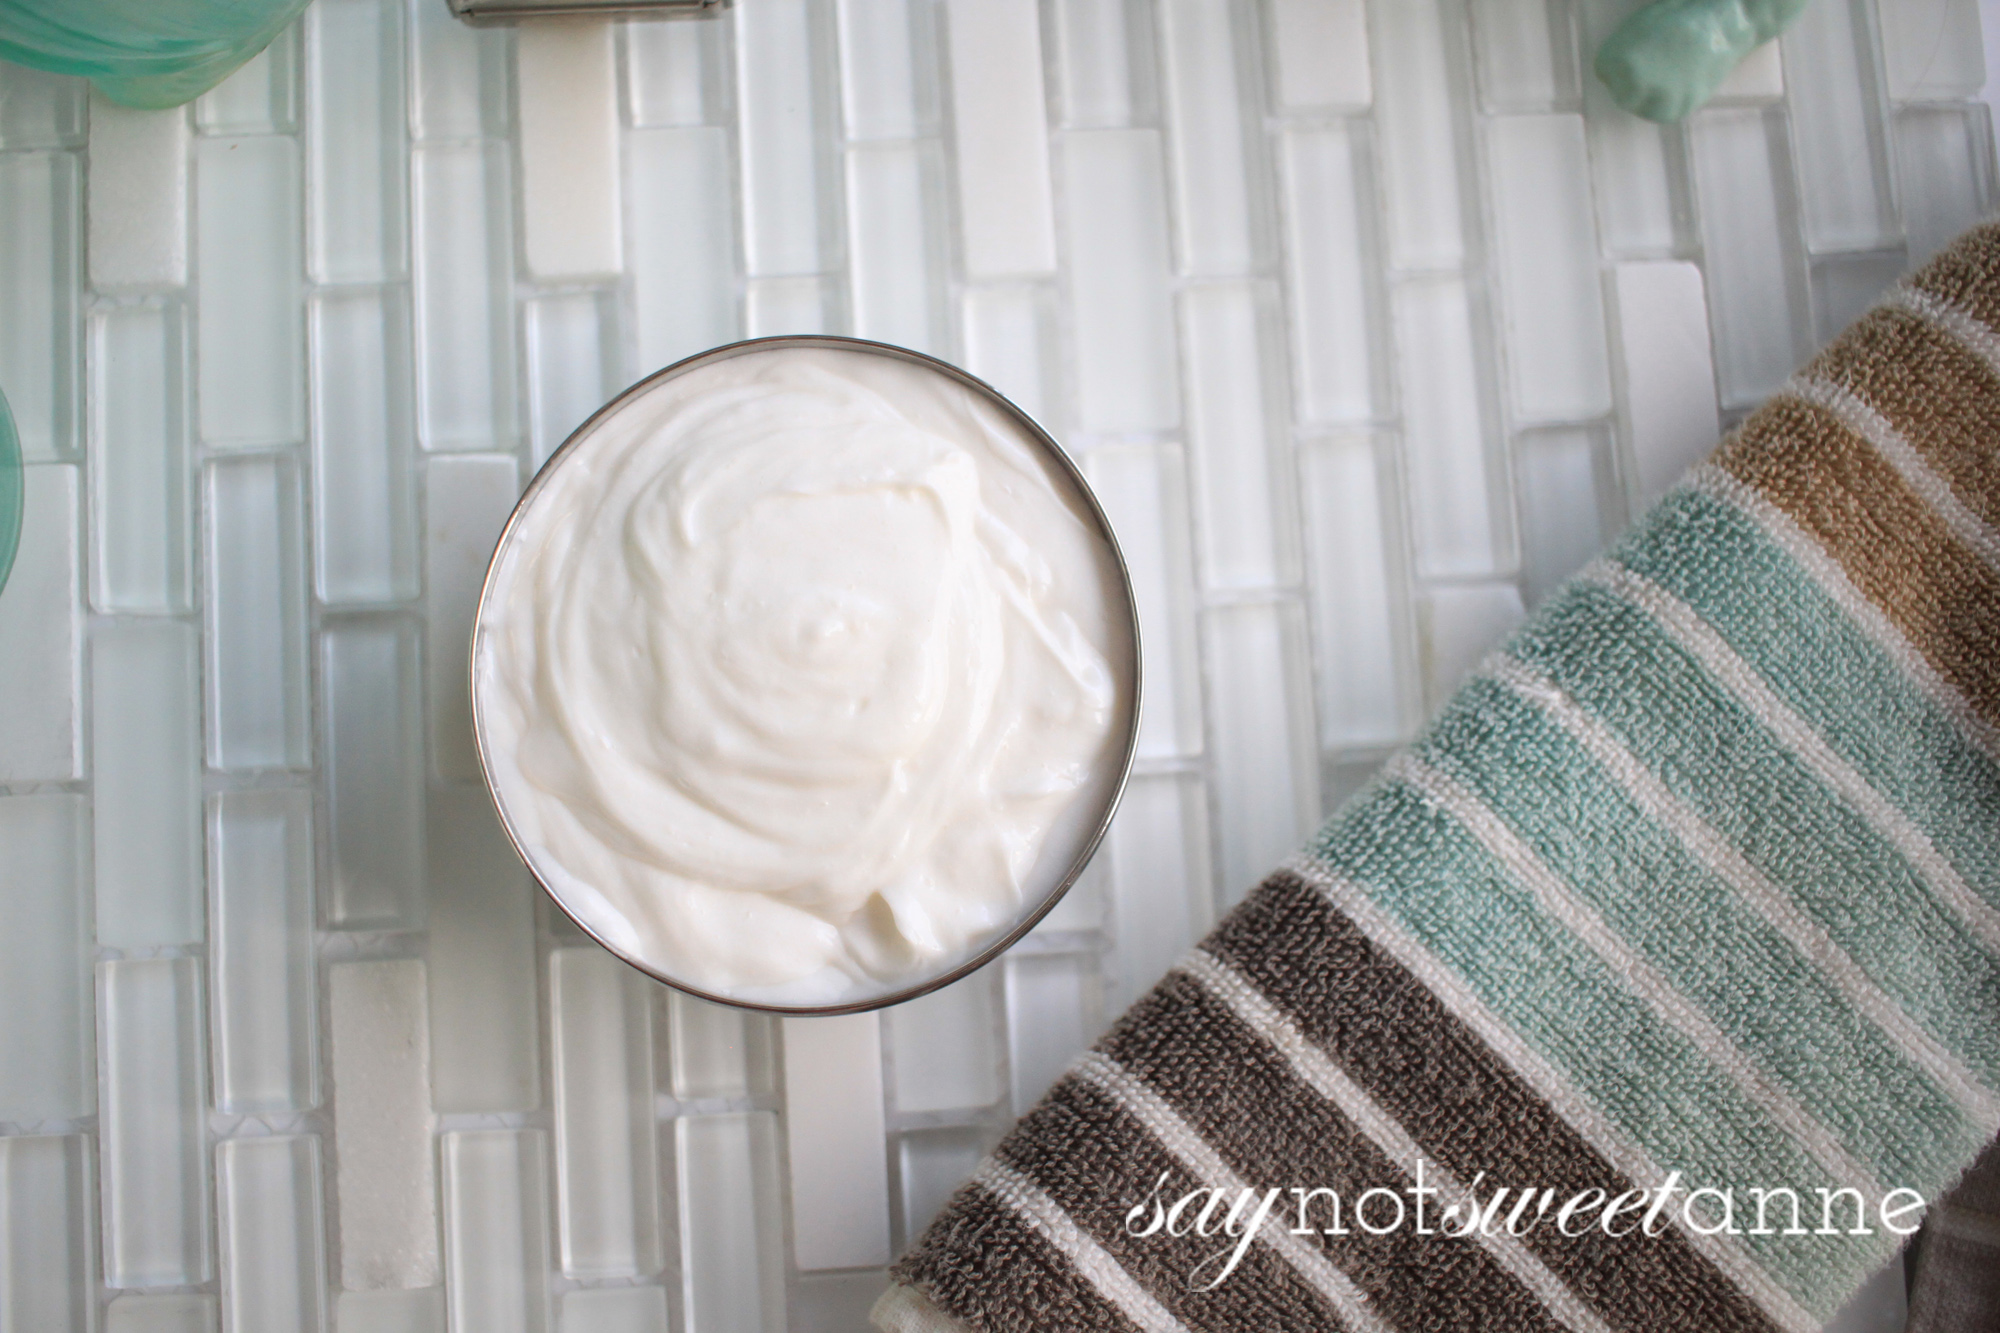 Home made all natural face moisturizer recipe. Simple and easy to find ingredients to make a customizable cream formula. Add essential oils, minerals, anything you'd like! Great for most skin types and easy enough for beginners.   saynotsweetanne.com